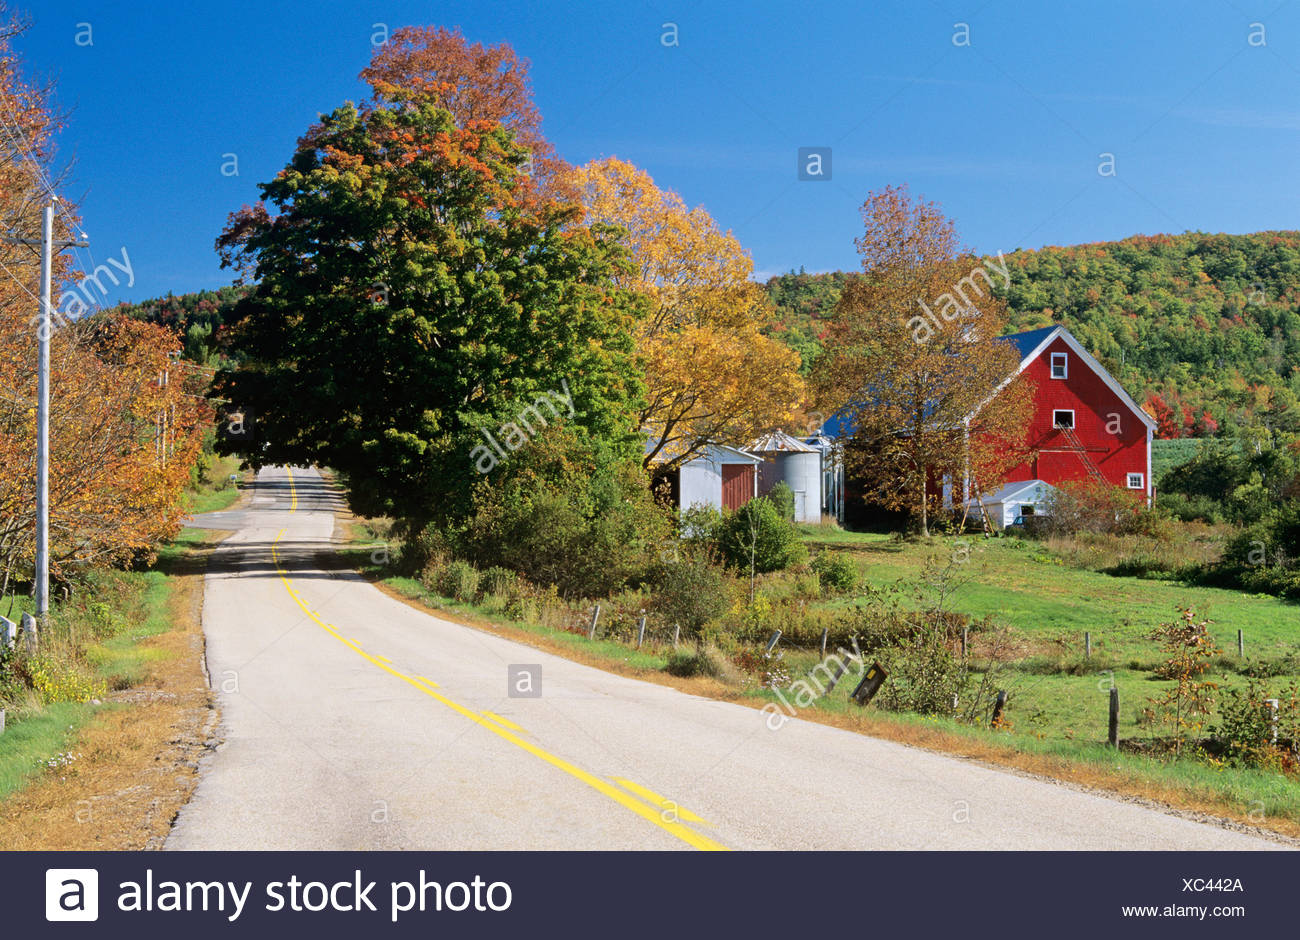 Country road and farm near Clarence, Annapolis River Valley, Nova Scotia, Canada. - Stock Image